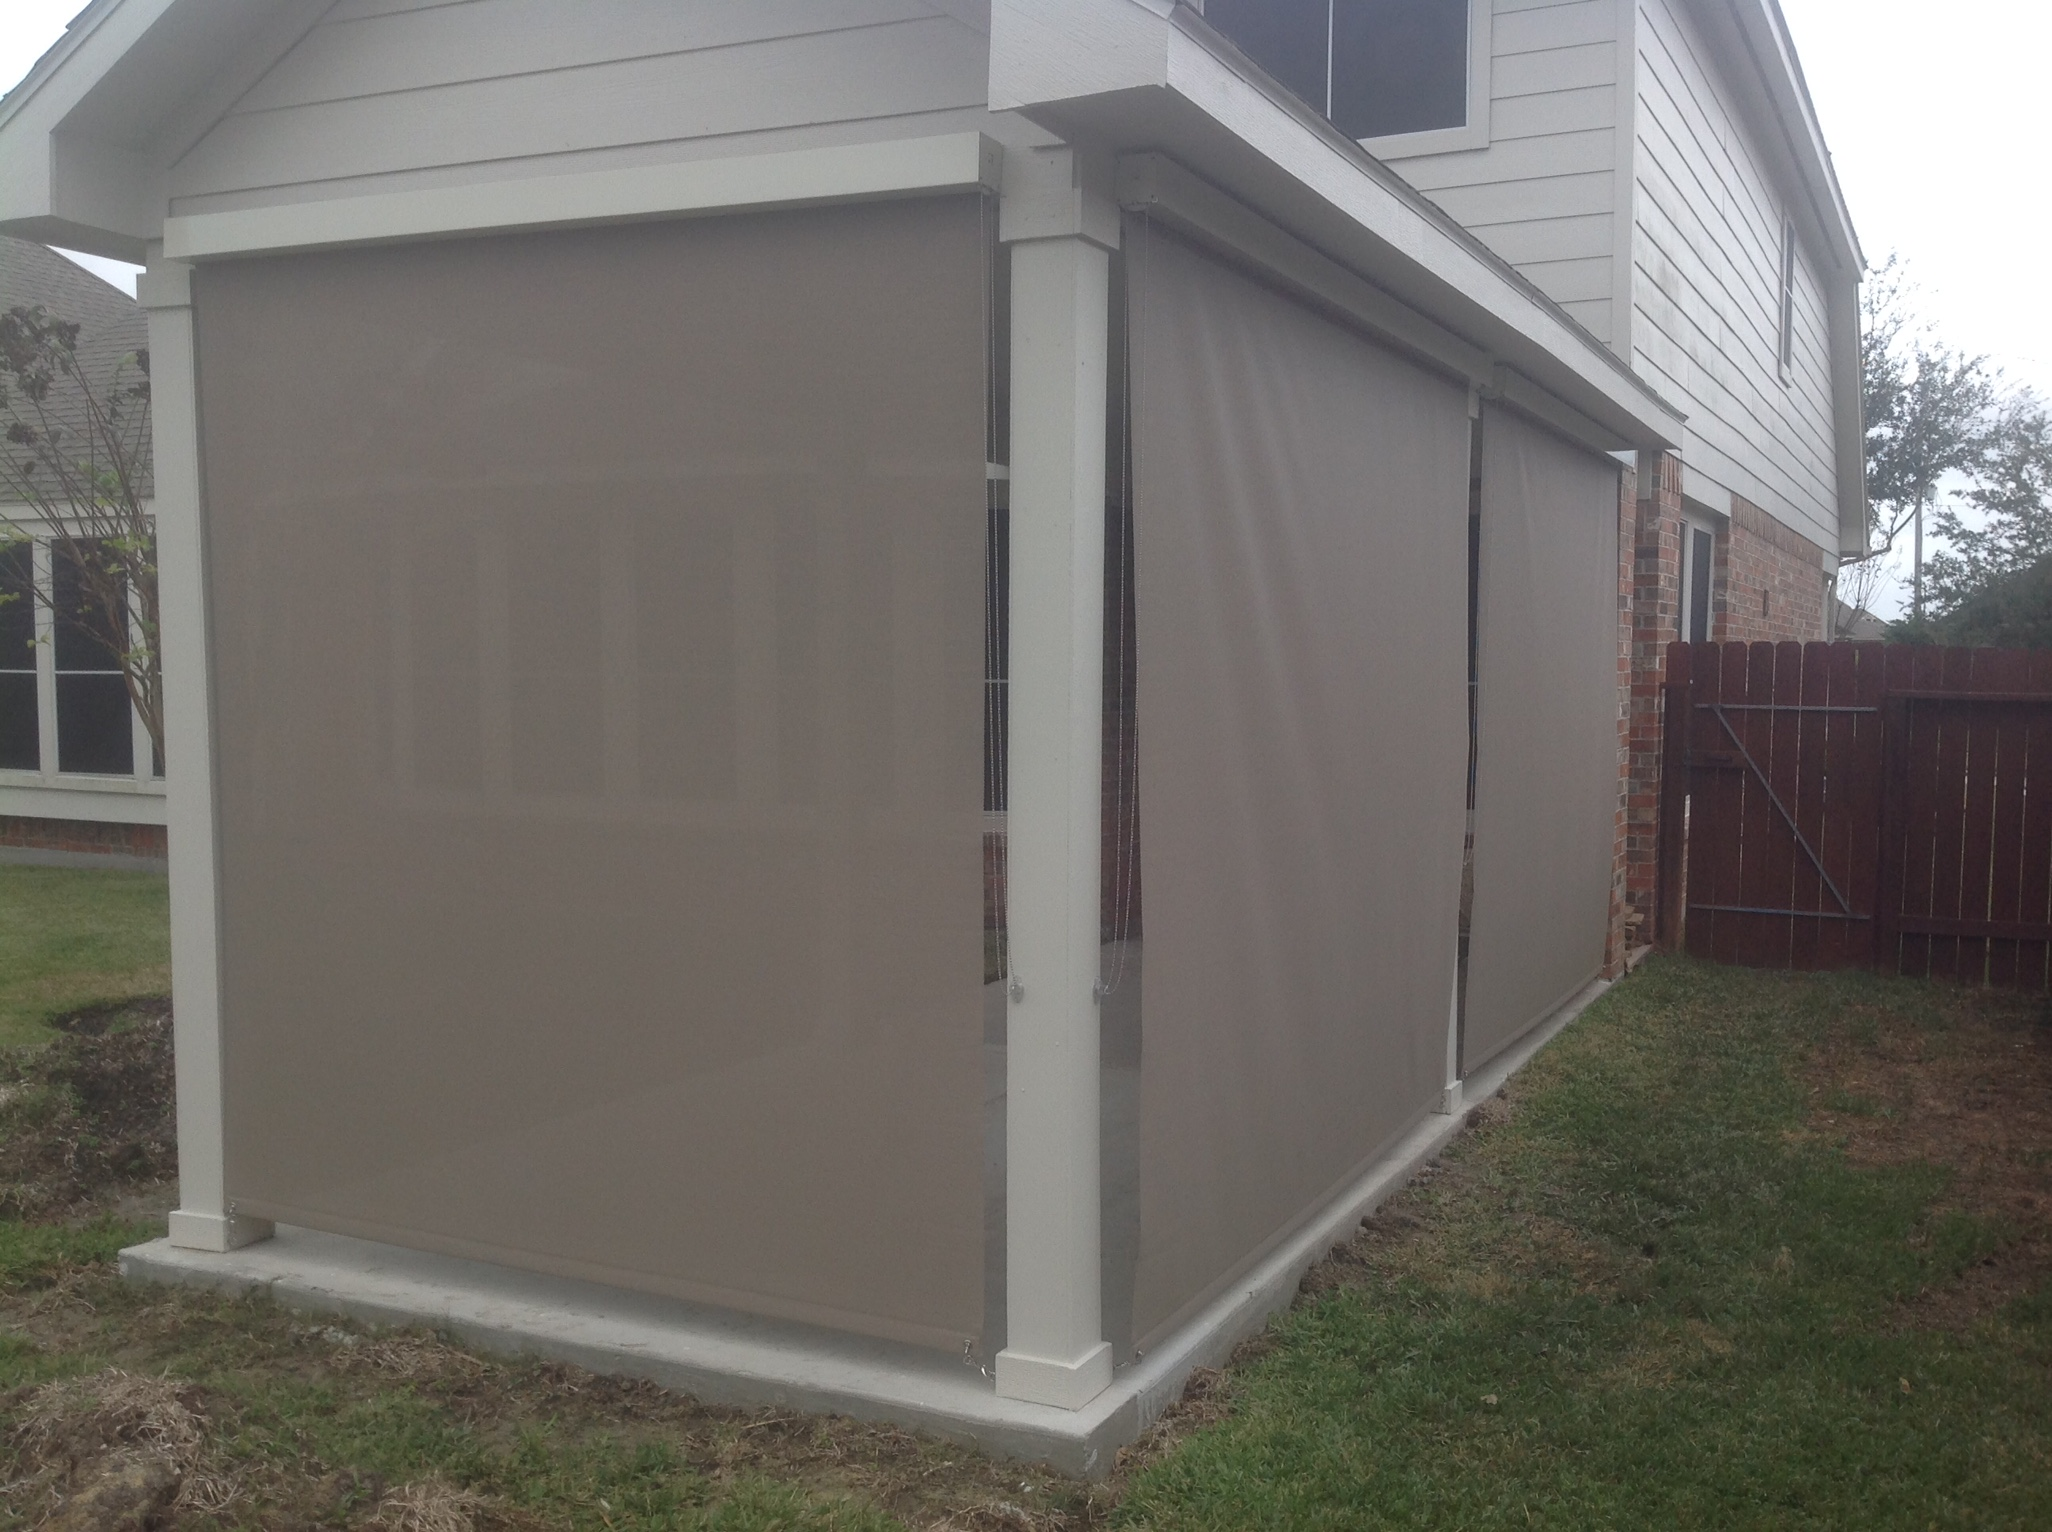 Garage Door Screen That Rolls Up Houston Outdoor Shades Roll Up Or Down Shades Roll Away Shade